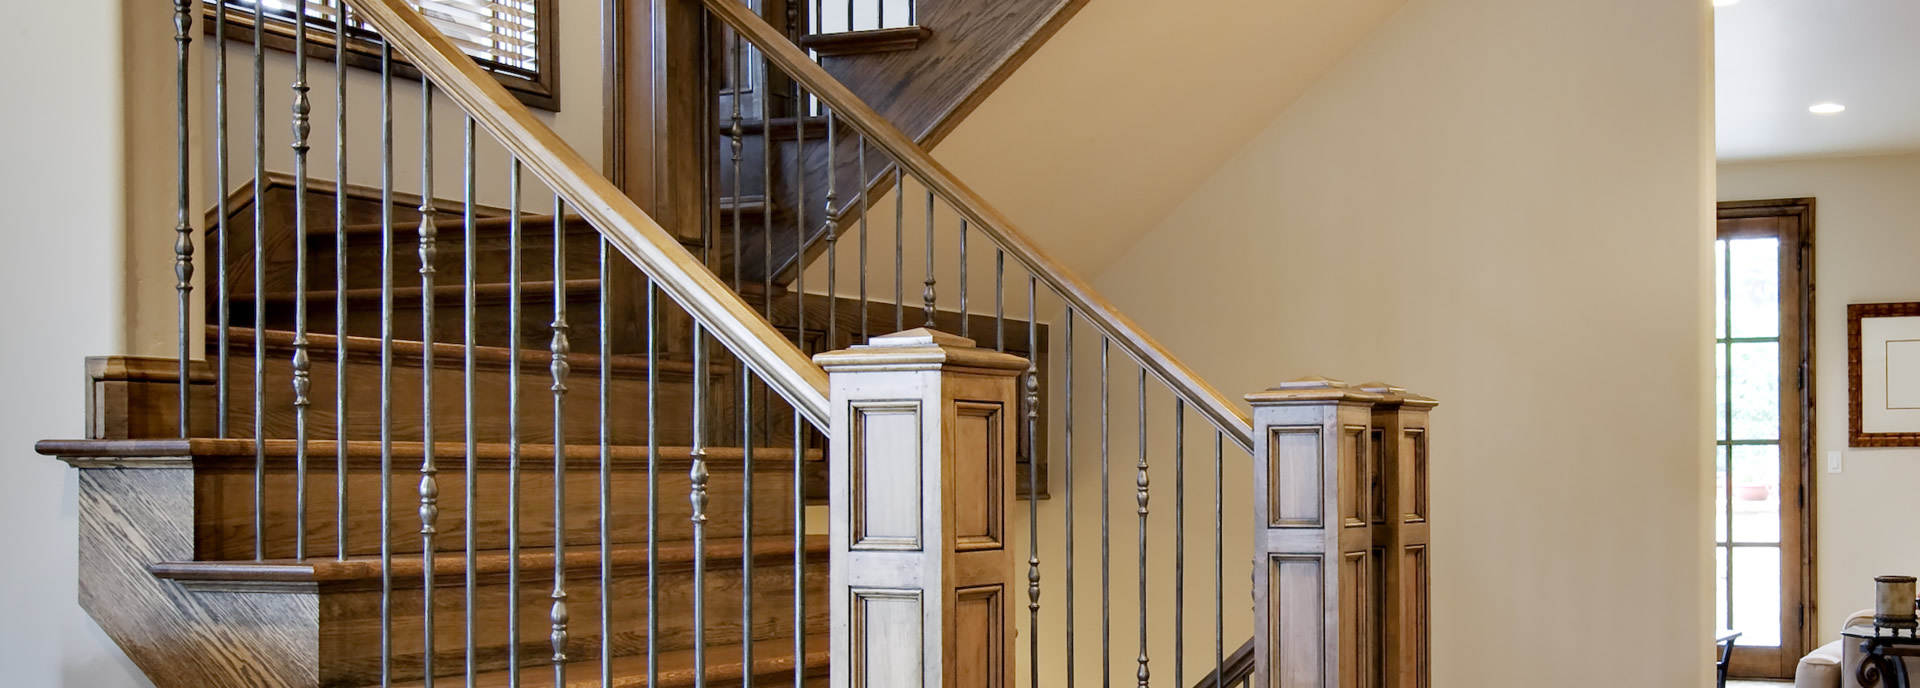 Stair Design Photo of the Month- Interior and Exterior Wrought Iron Railings Alpharetta, GA